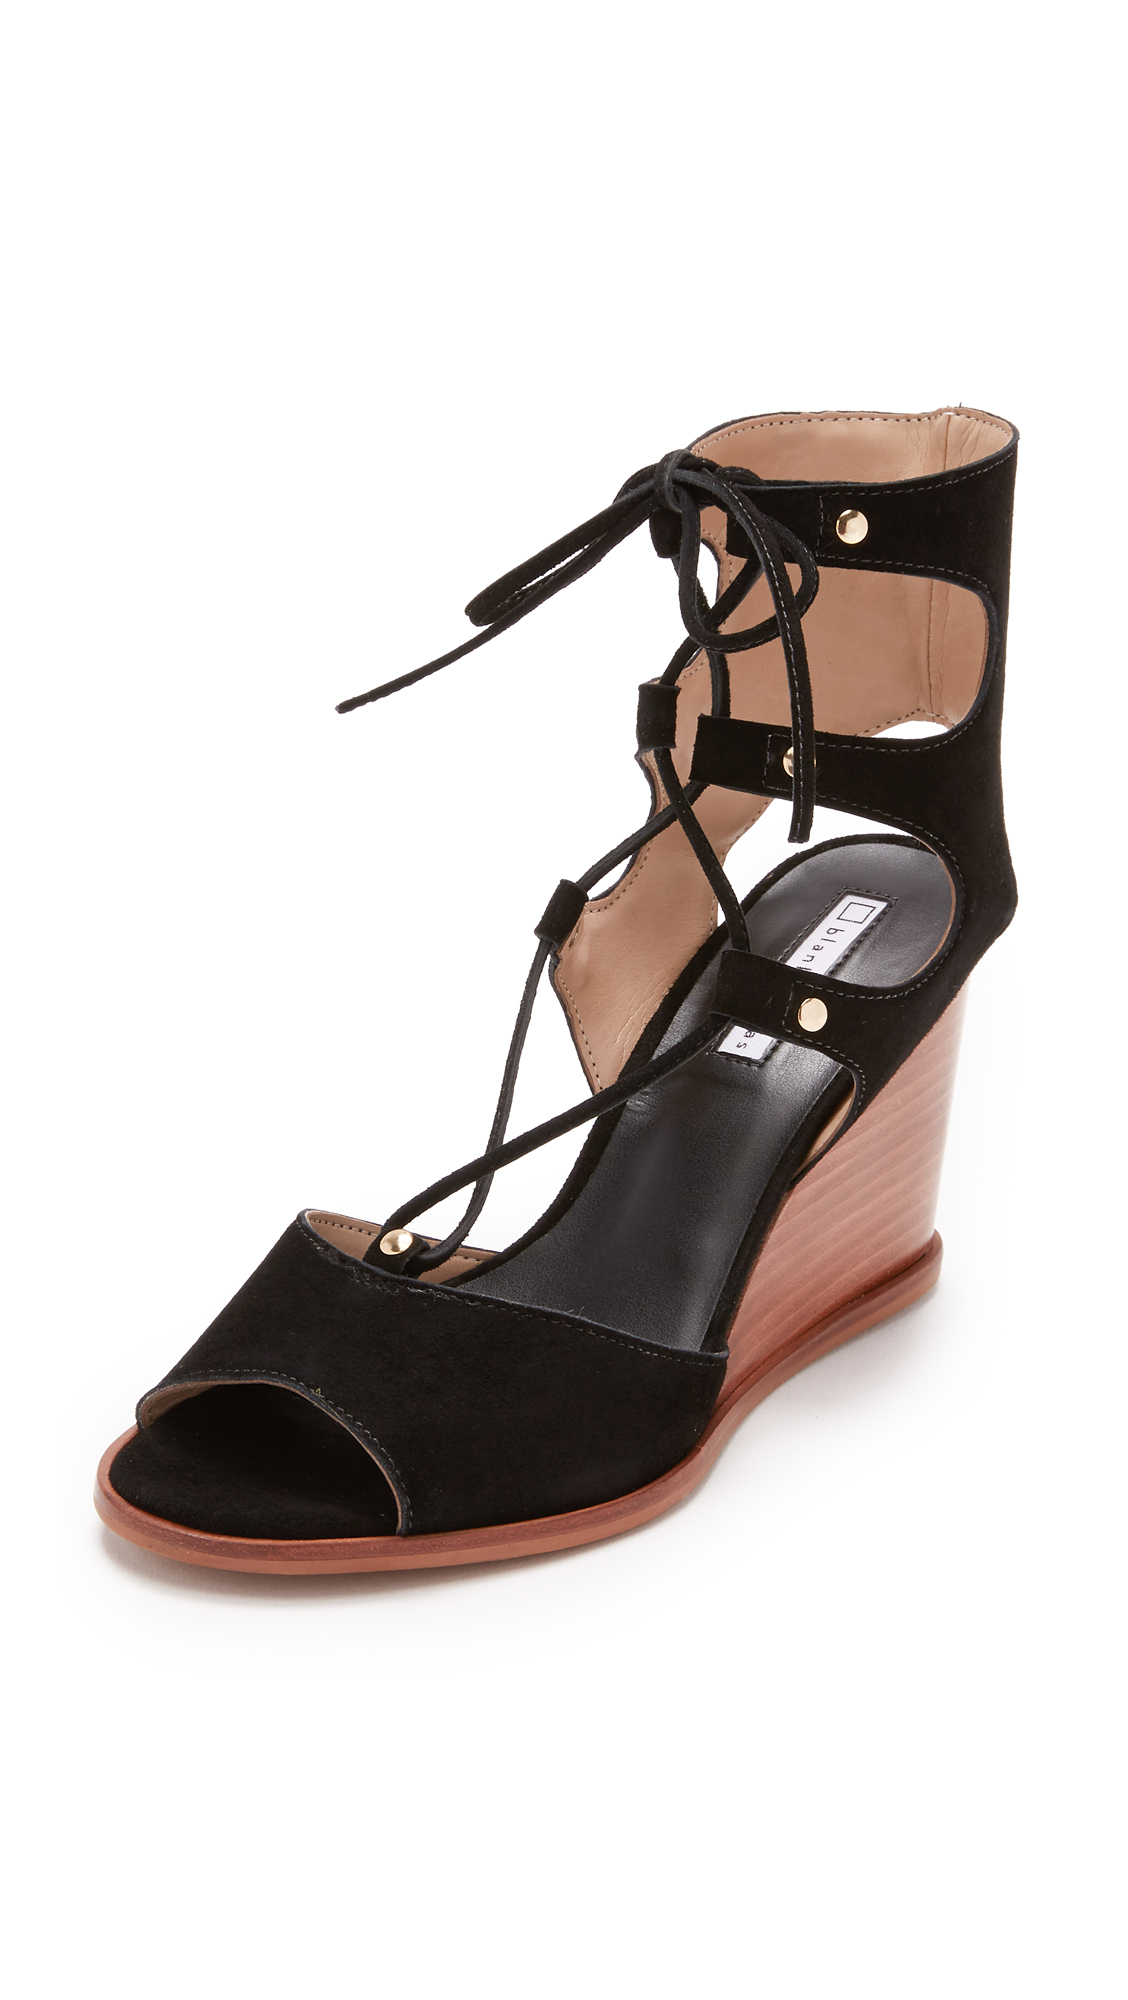 Blank Canvas Lace Up Wedge Sandals - Black at Shopbop